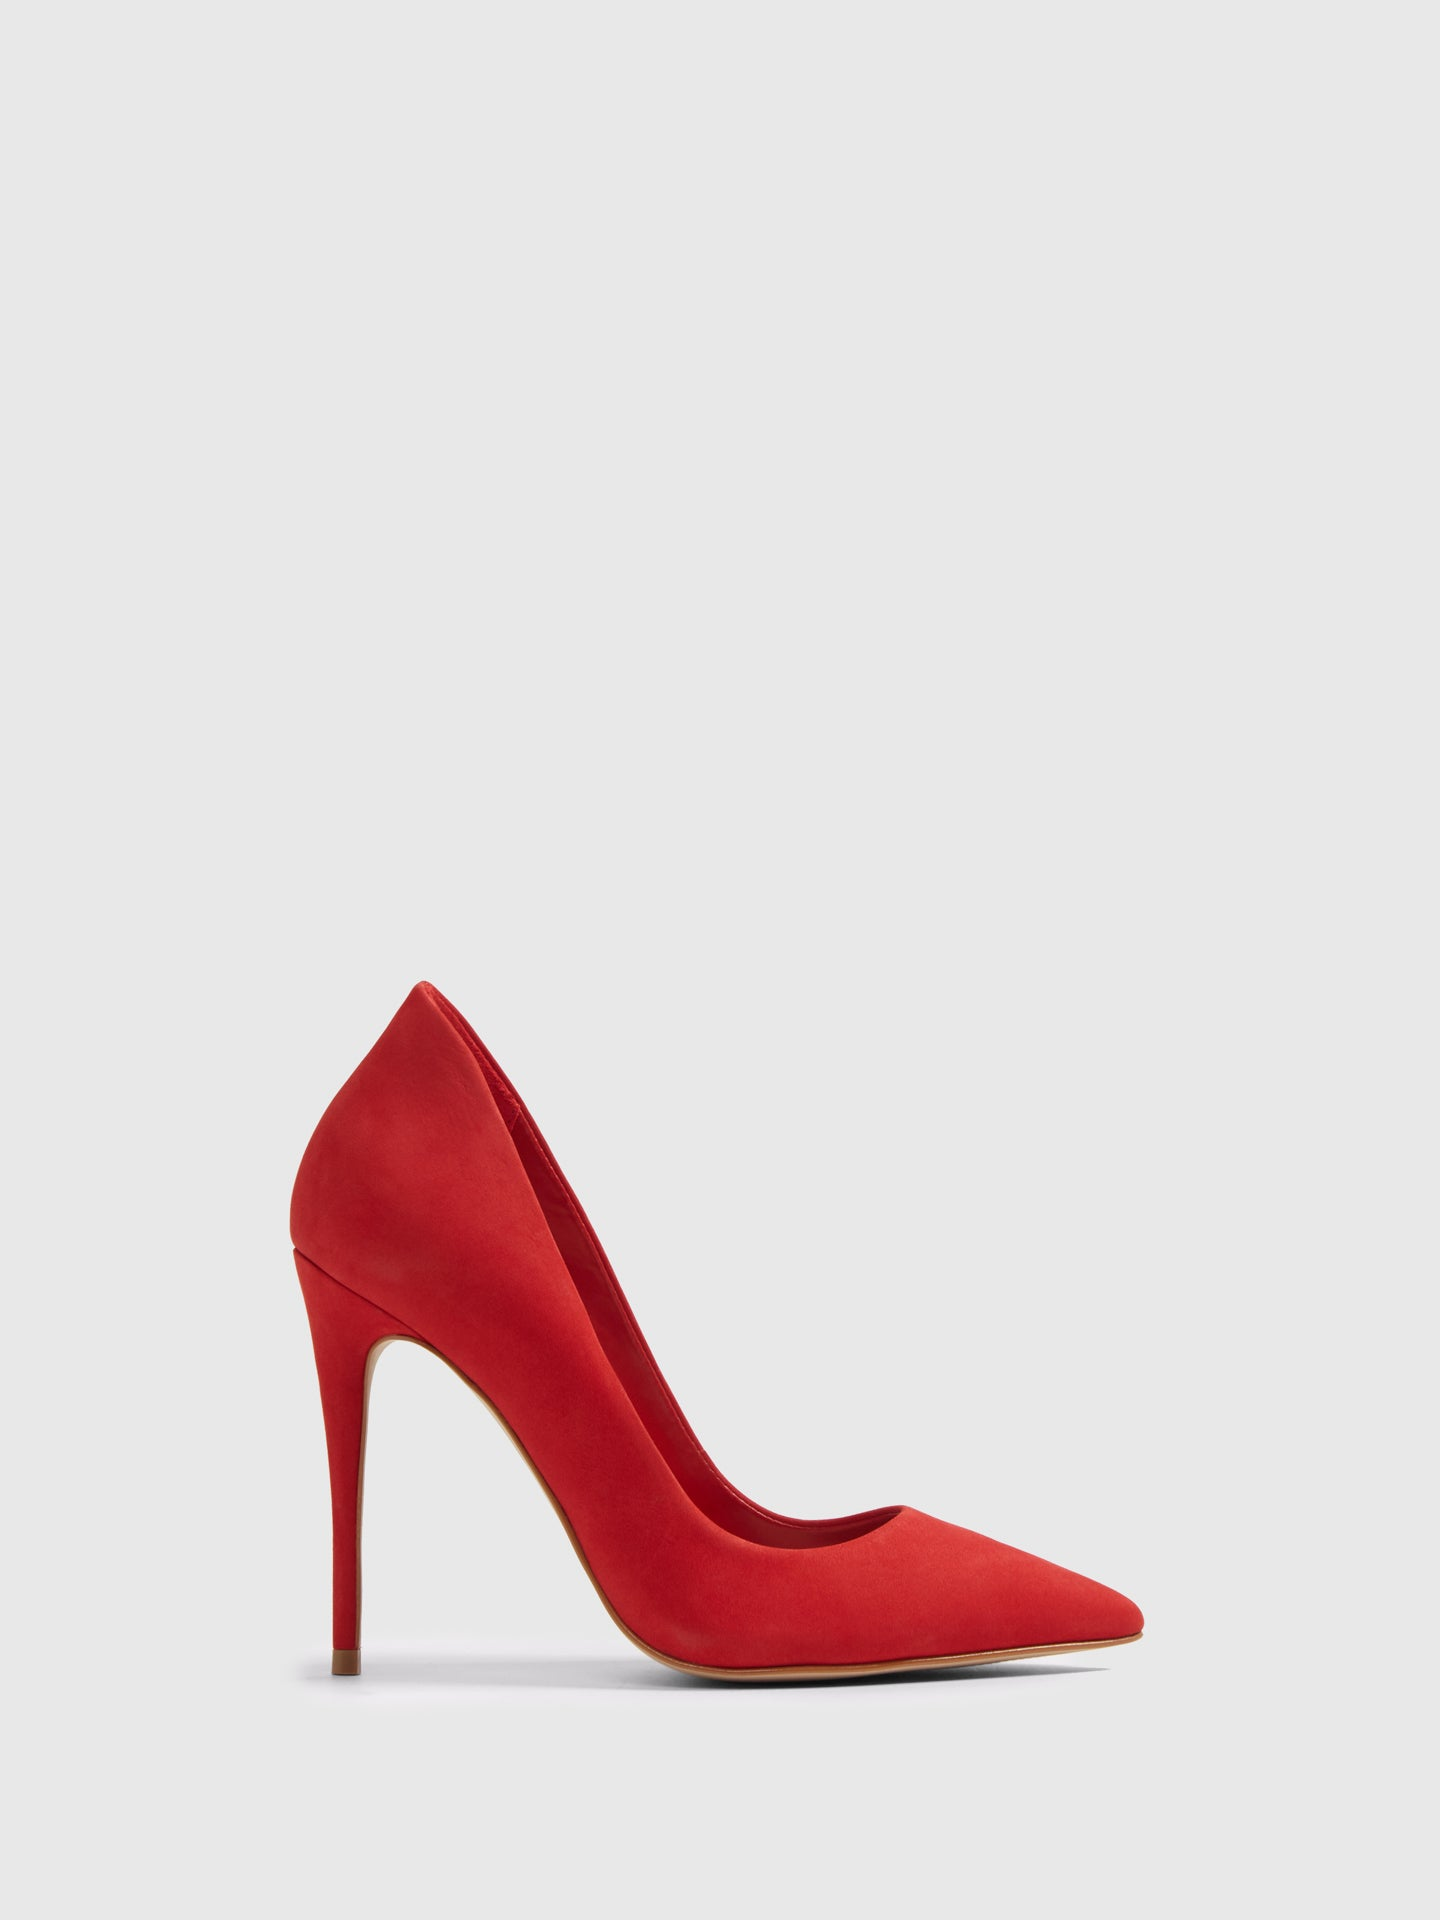 Aldo Red Stiletto Shoes